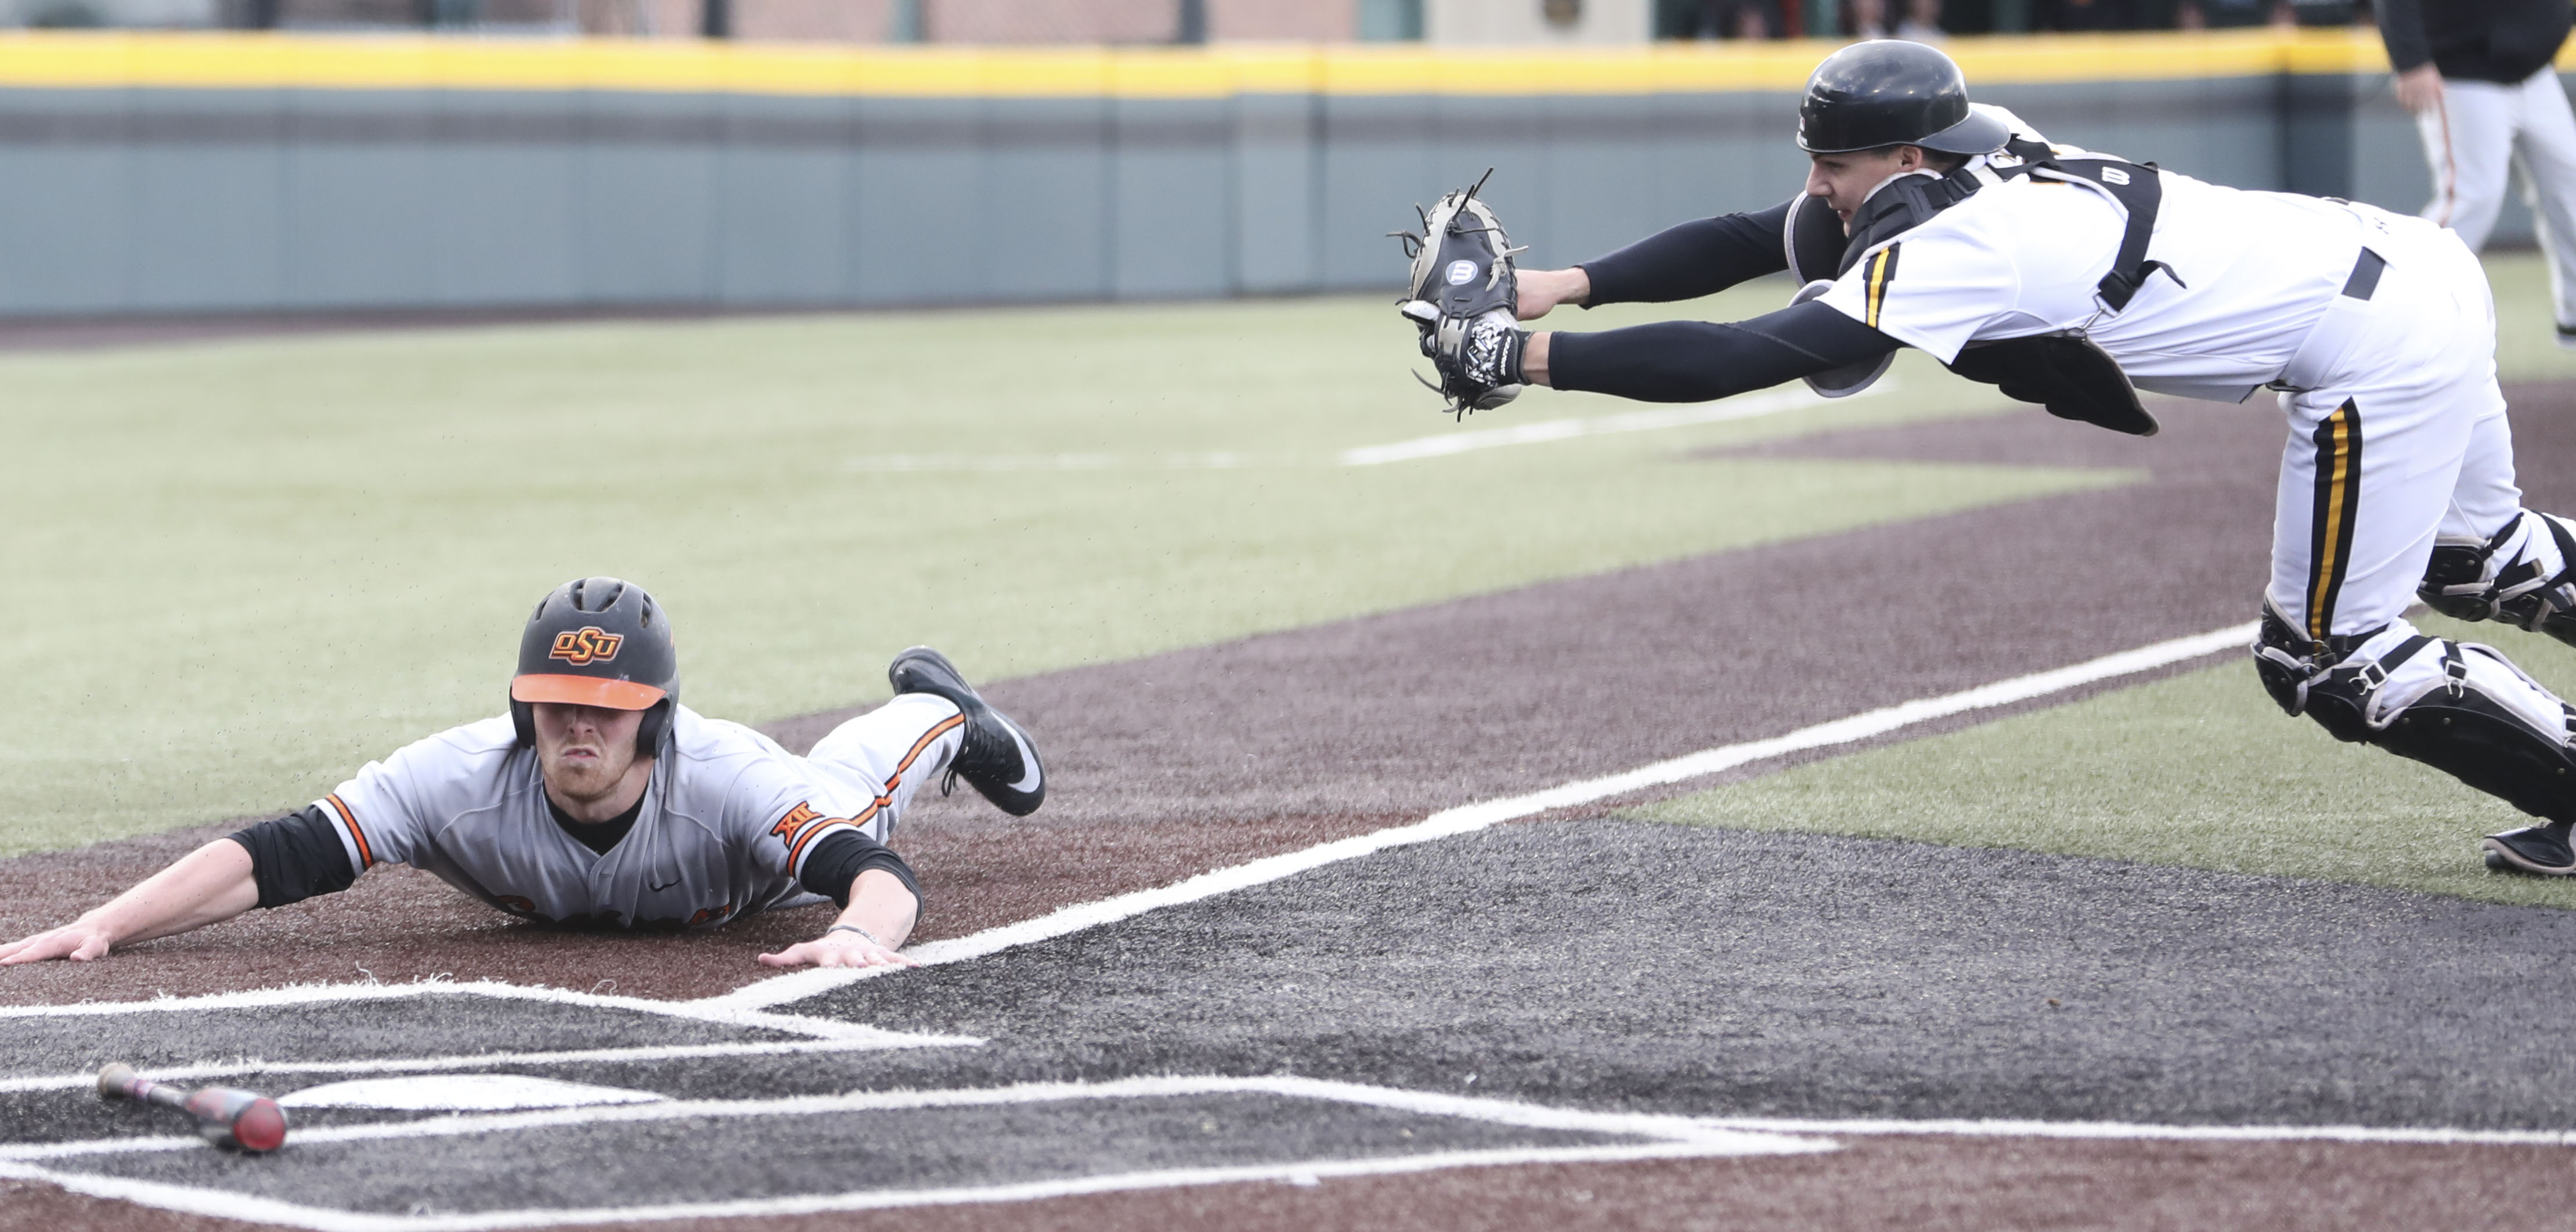 Oklahoma State infielder Cameron Dobbs scores against Wichita State catcher Noah Croft in the second inning during Wednesday's game in Eck Stadium. (April 5, 2017)